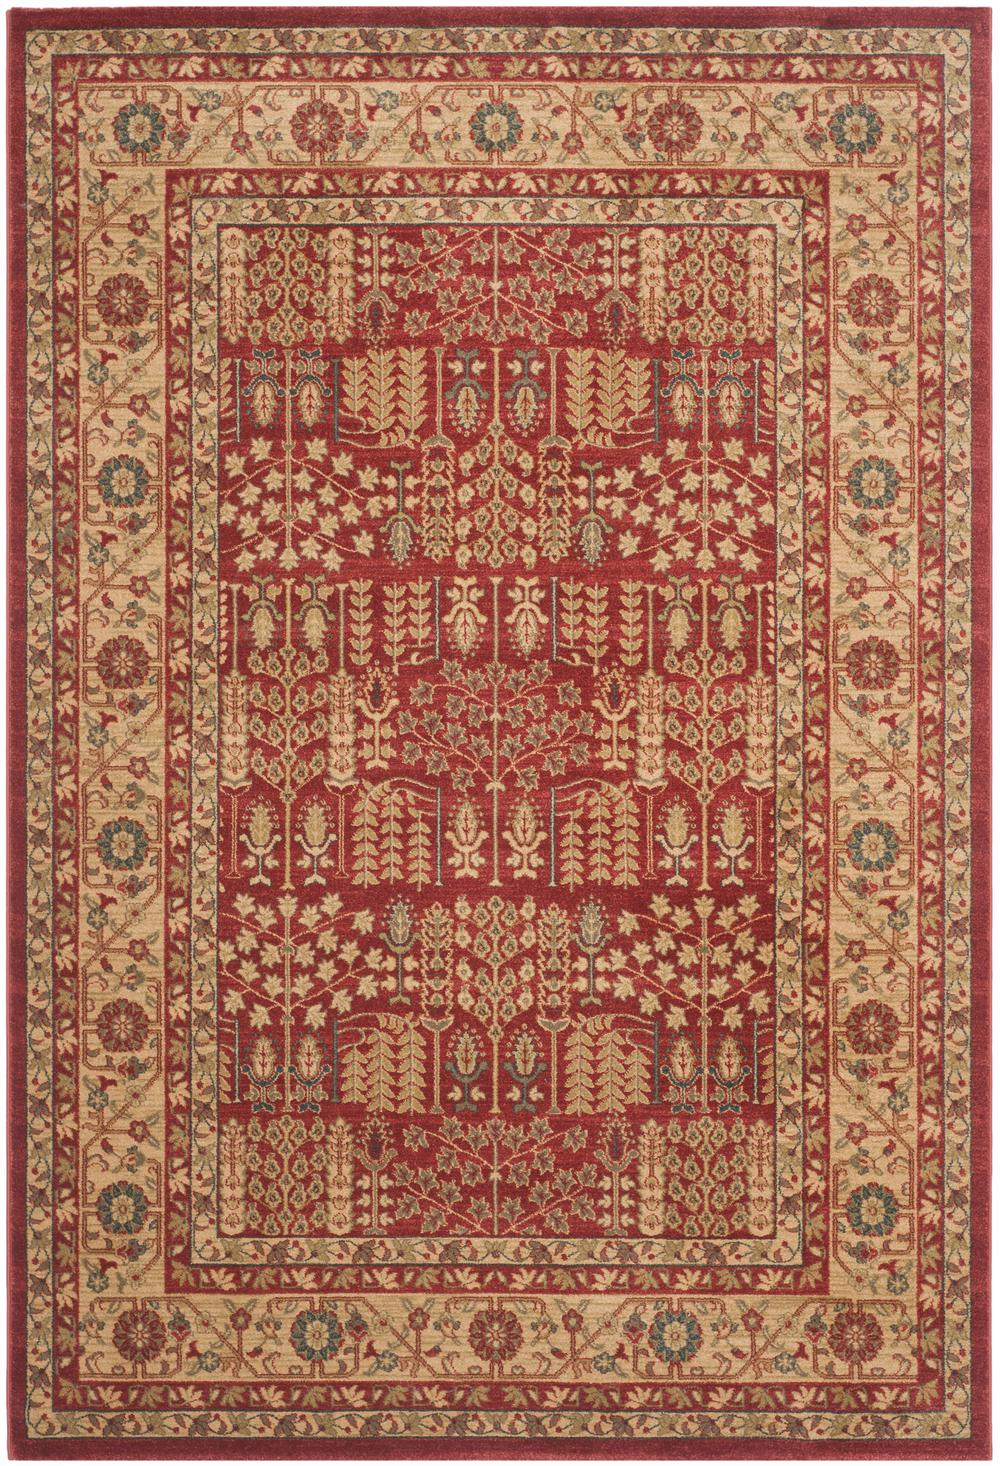 Safavieh Mahal Mah697a Red And Natural Area Rug Free